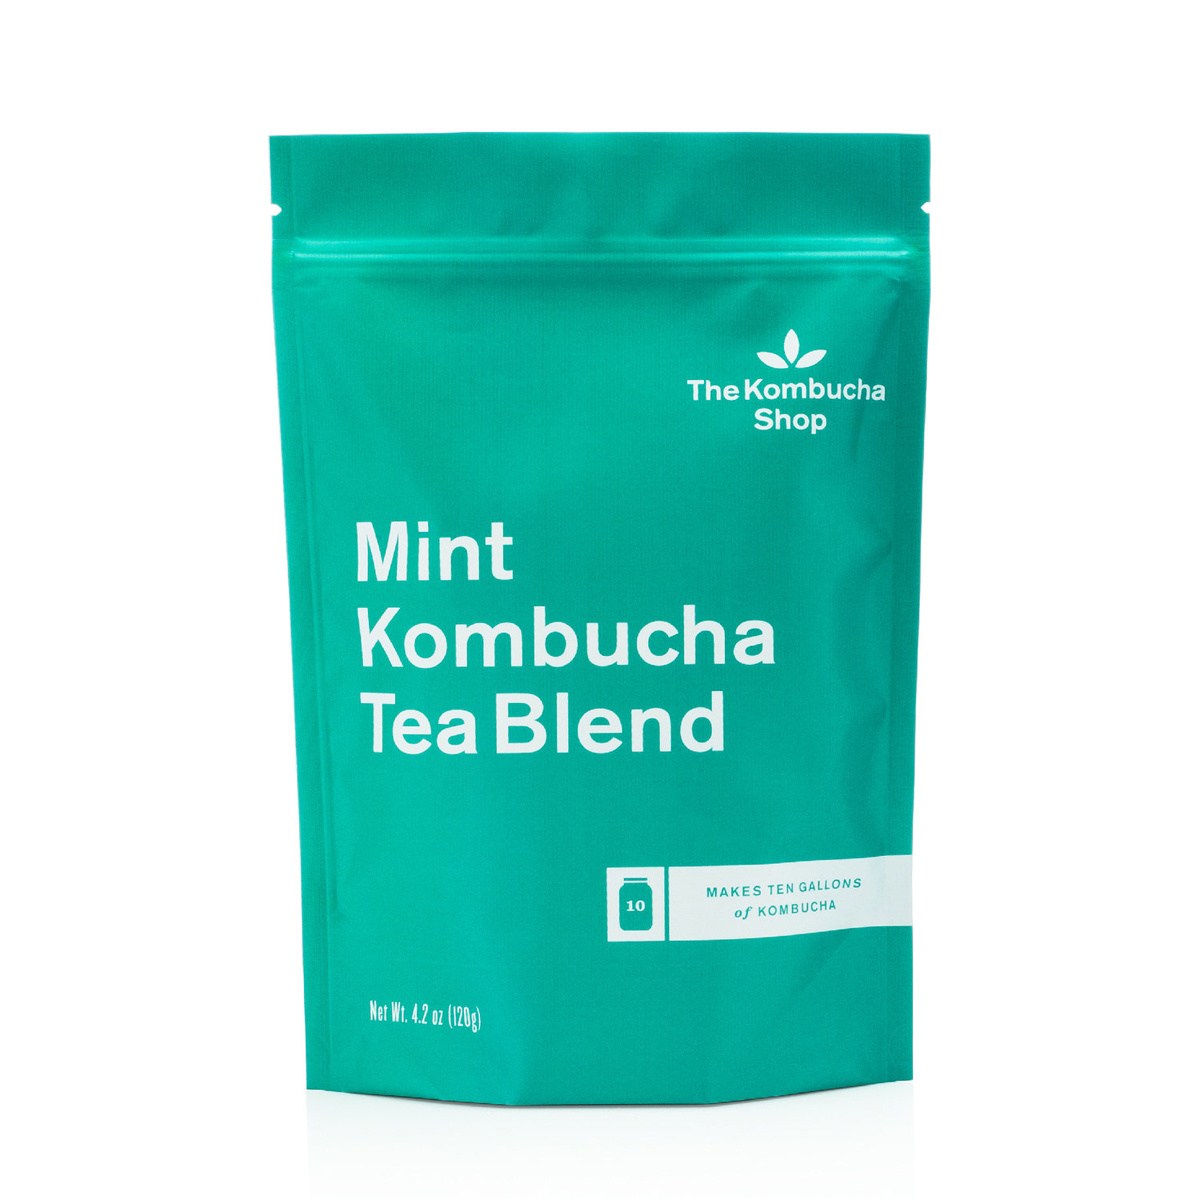 Kombucha Shop Mint Kombucha Tea Blend